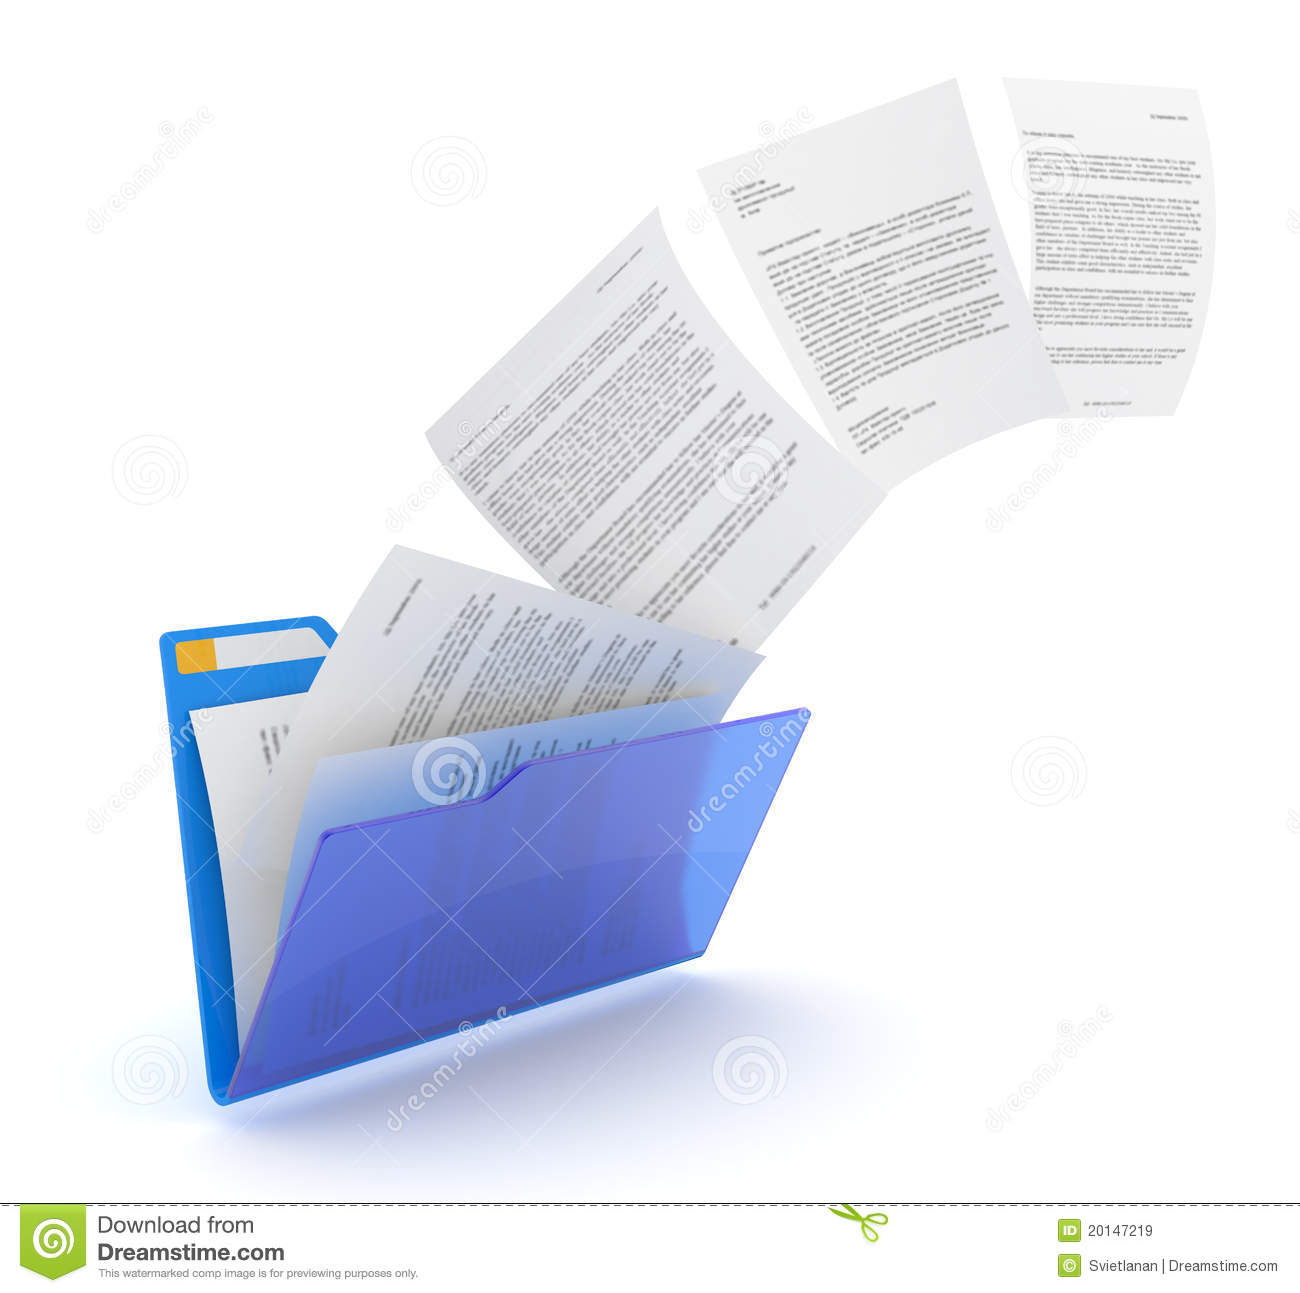 what is a generativity document